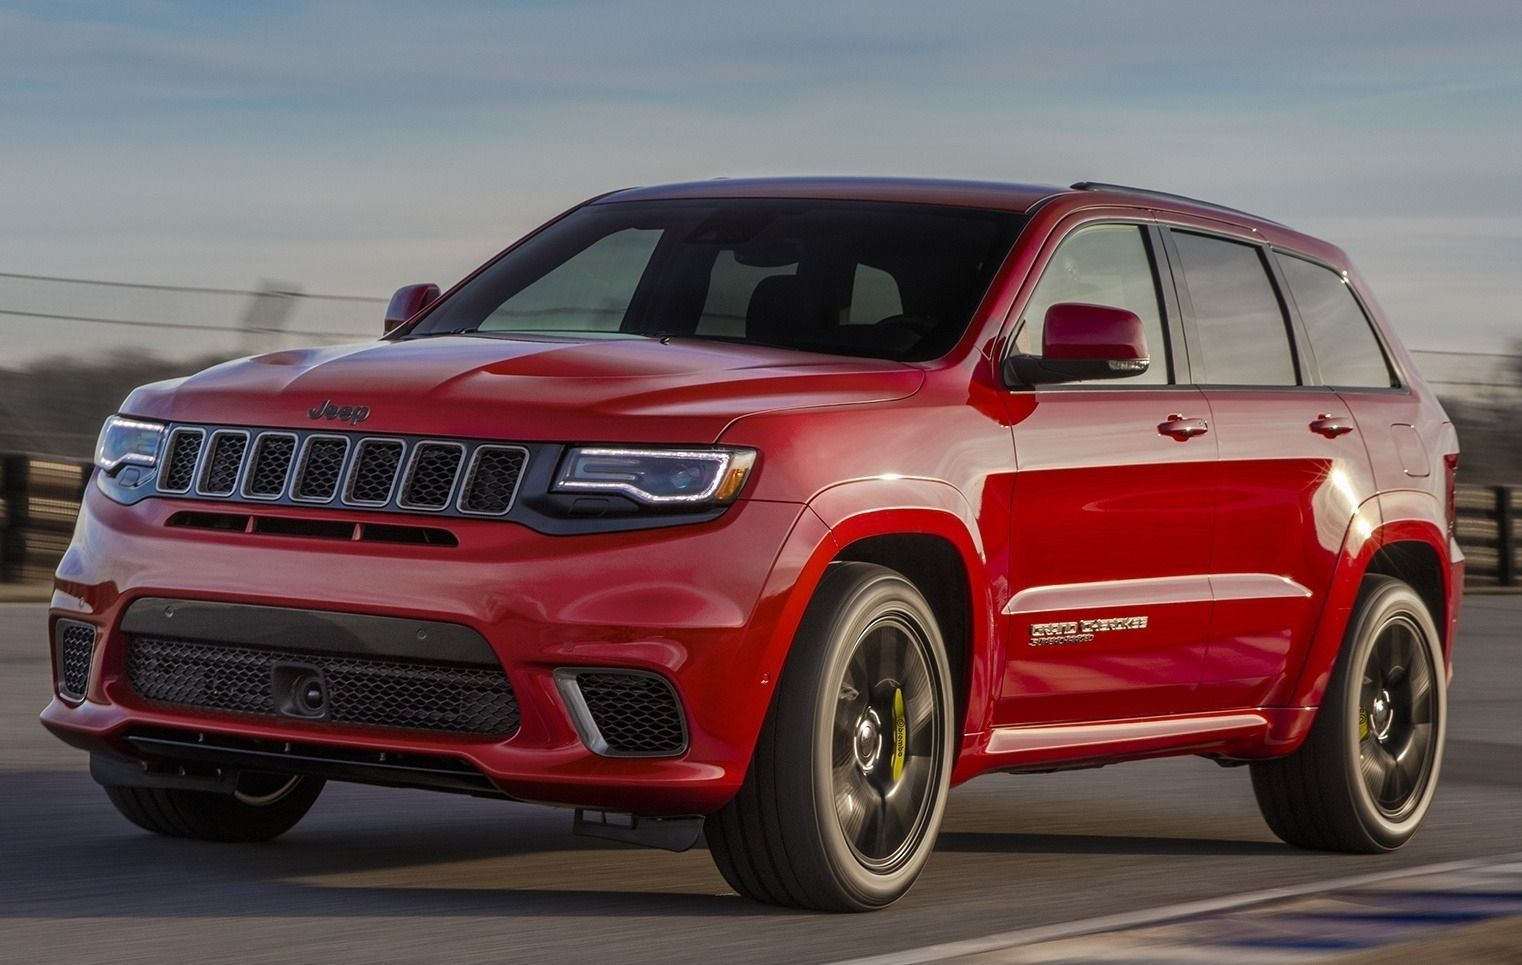 The 2018 Jeep Grand Cherokee Diesel Engine Cars Review 2019 Jeep Grand Cherokee Diesel Jeep Grand Cherokee New